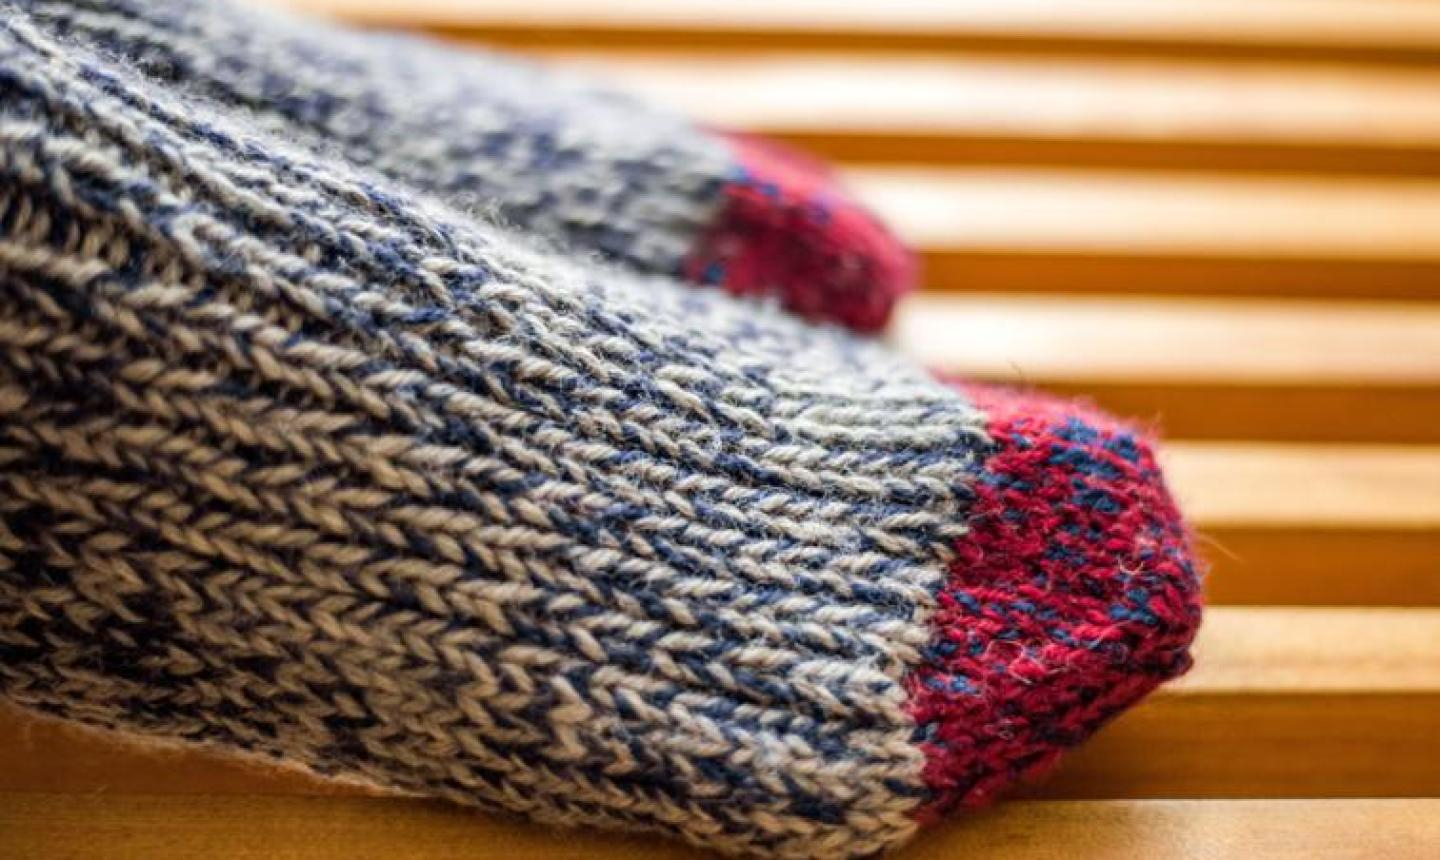 Knitting Sock Patterns For Beginners 7 Pro Tips For Sock Knitting Success Even If Its Your First Time